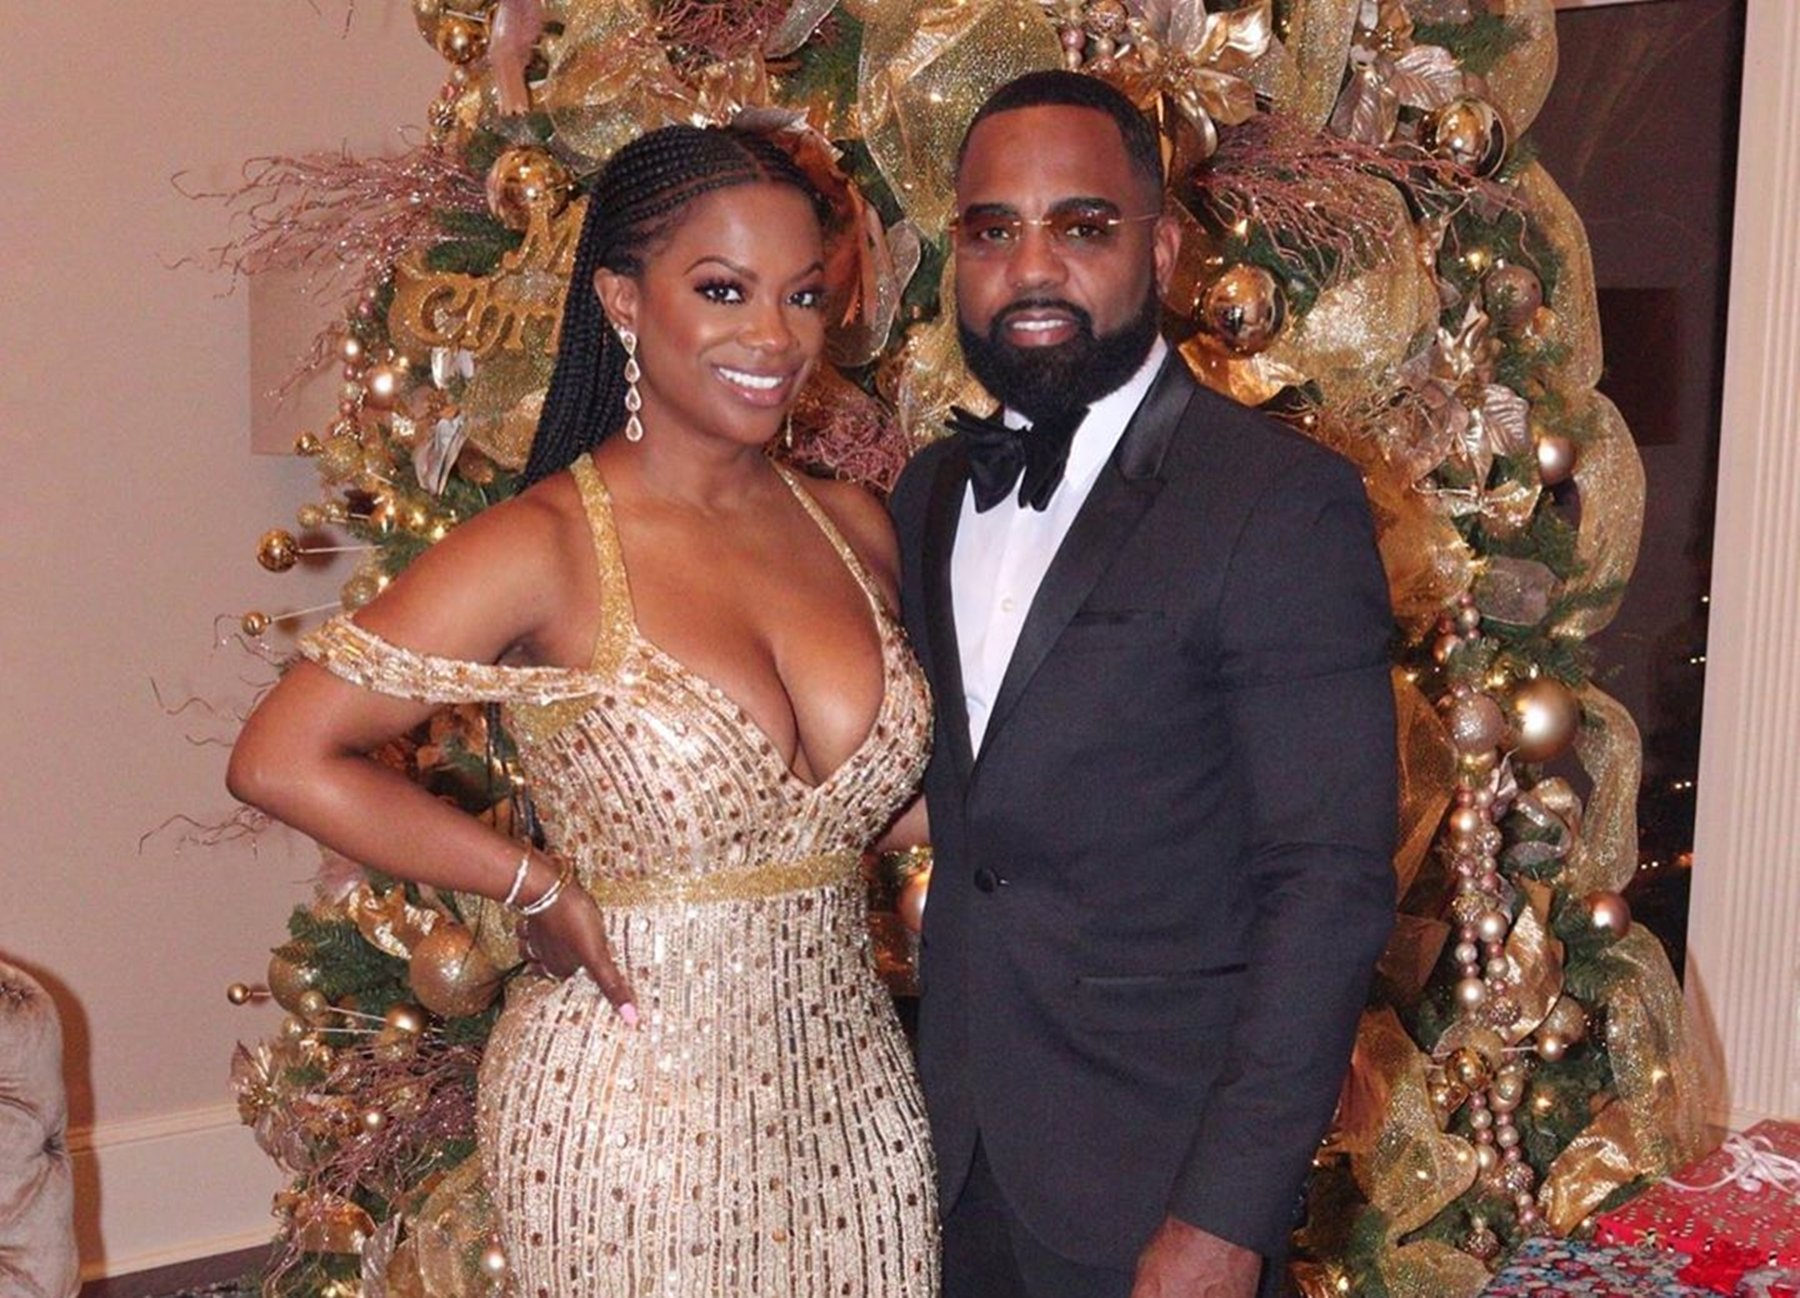 Kandi Burruss Shows Off Massive Cleavage In A Photo With Todd Tucker